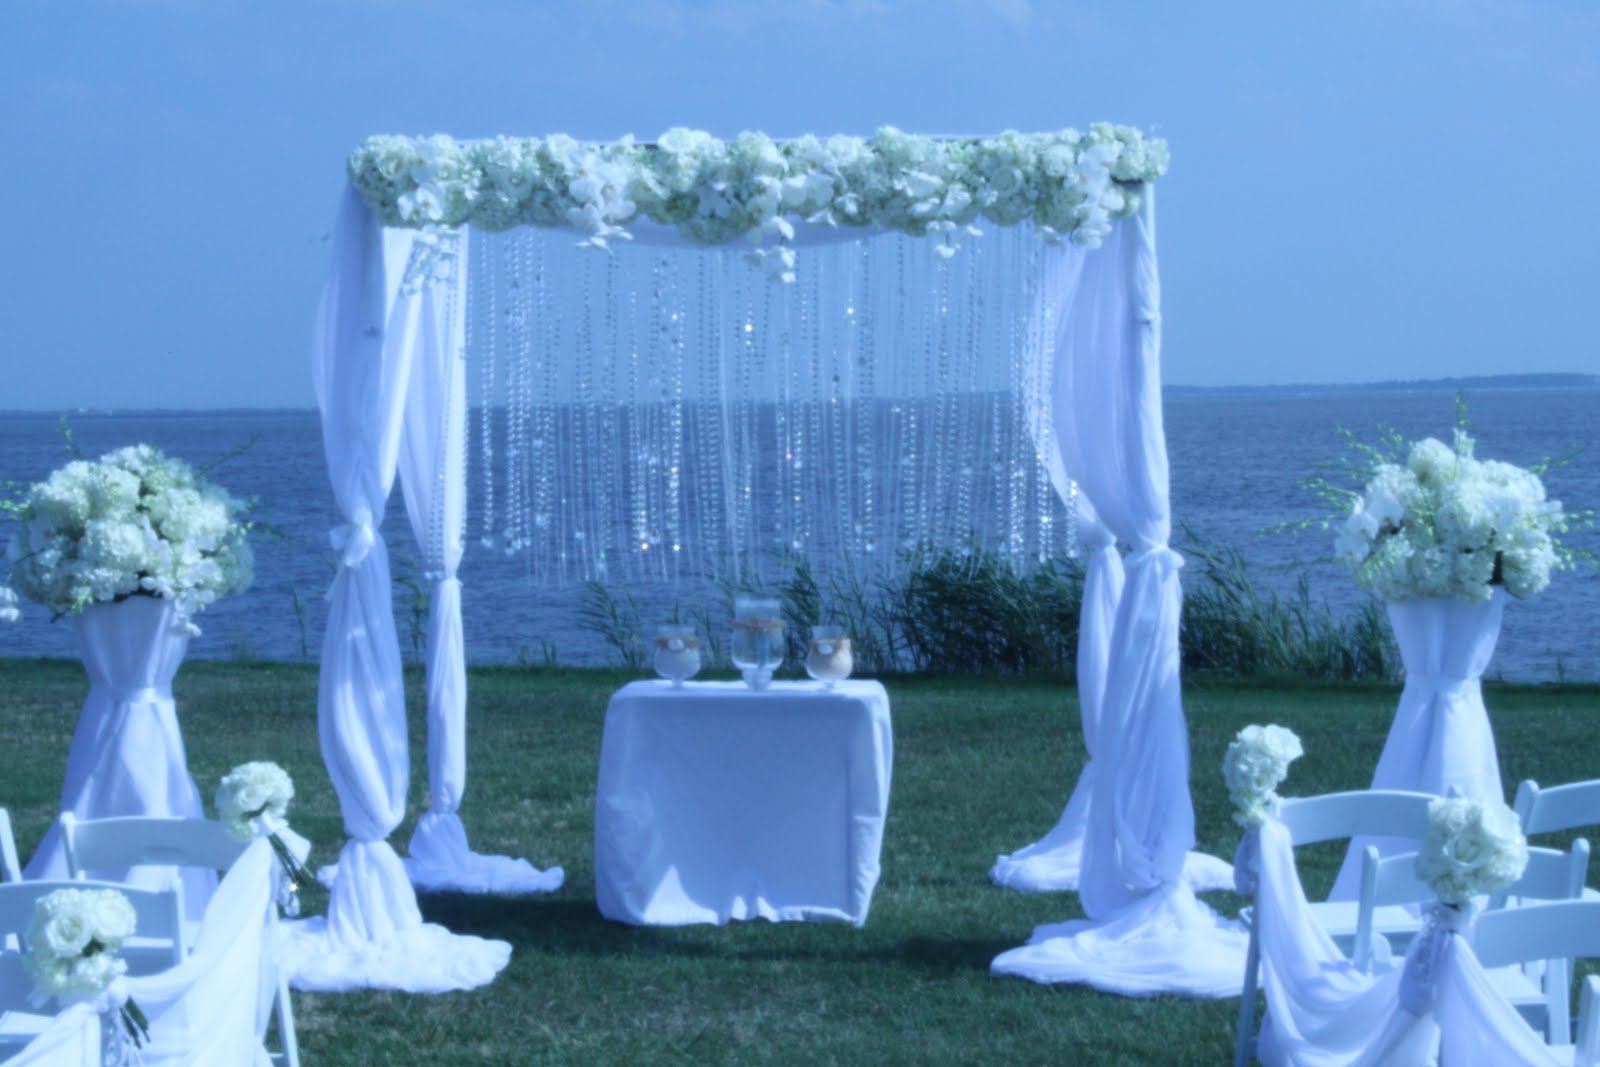 Rehoboth Beach Wedding With Our Crystal Fabric Canopy